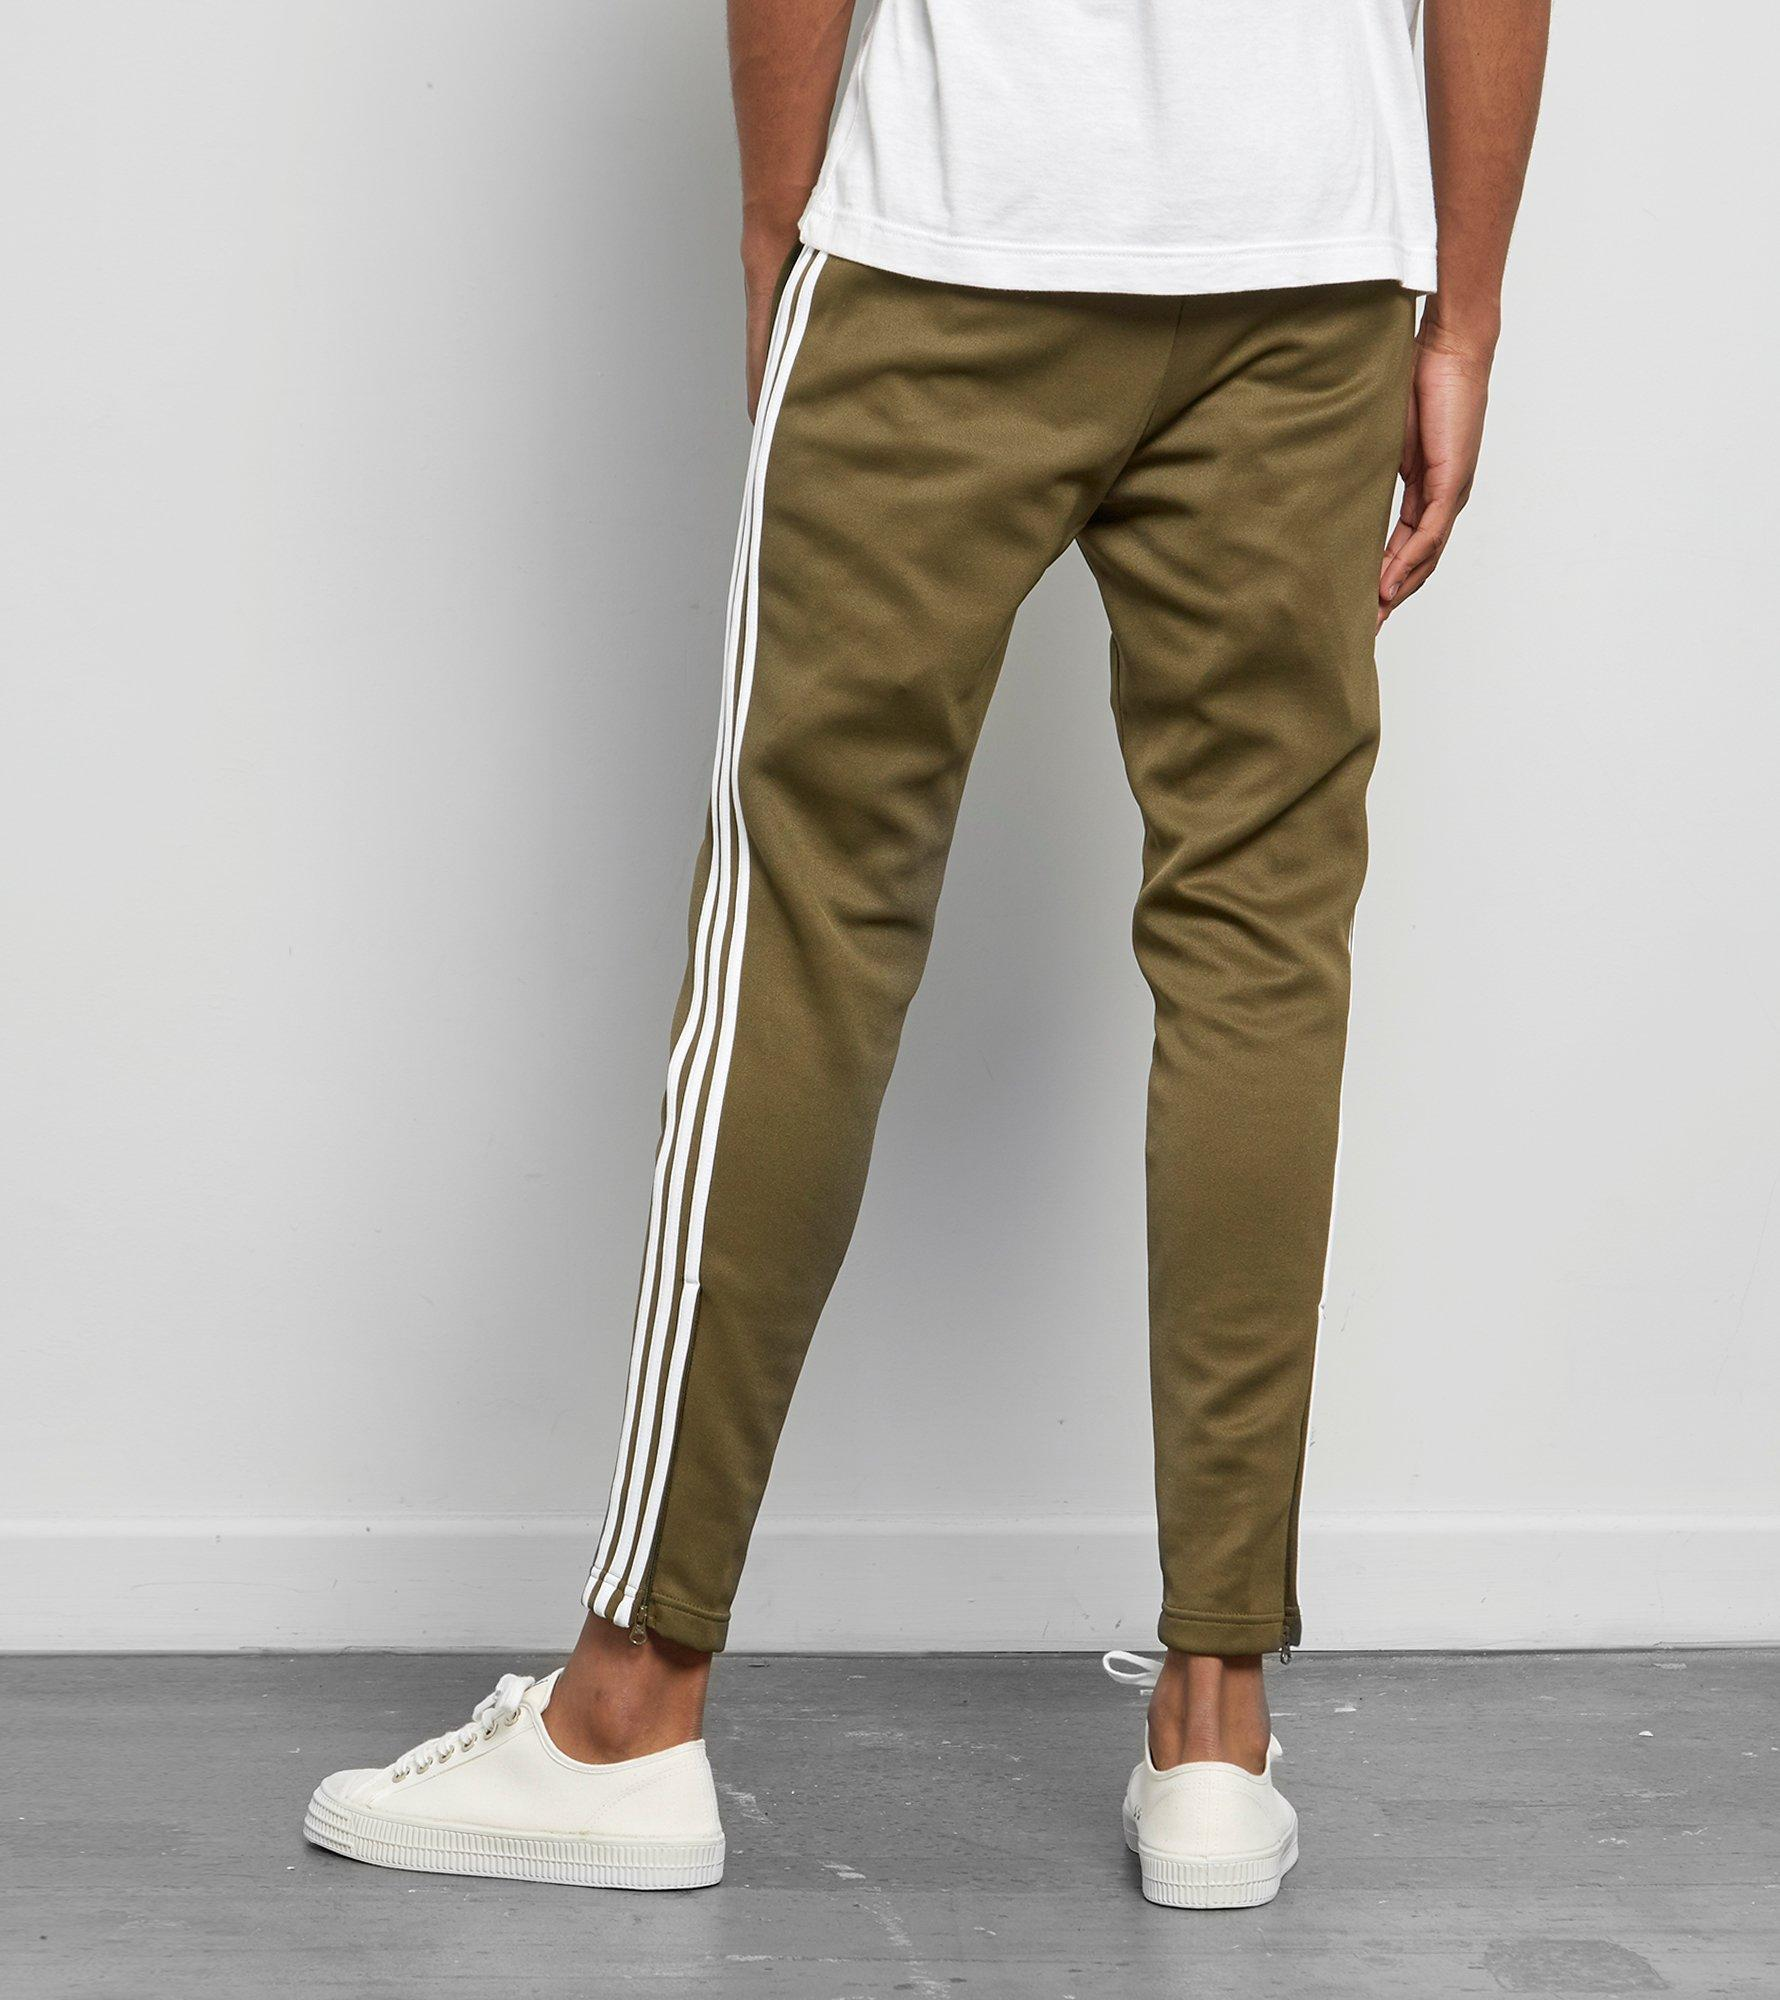 Adidas Originals Superstar Taper Track Pant Exclusive For